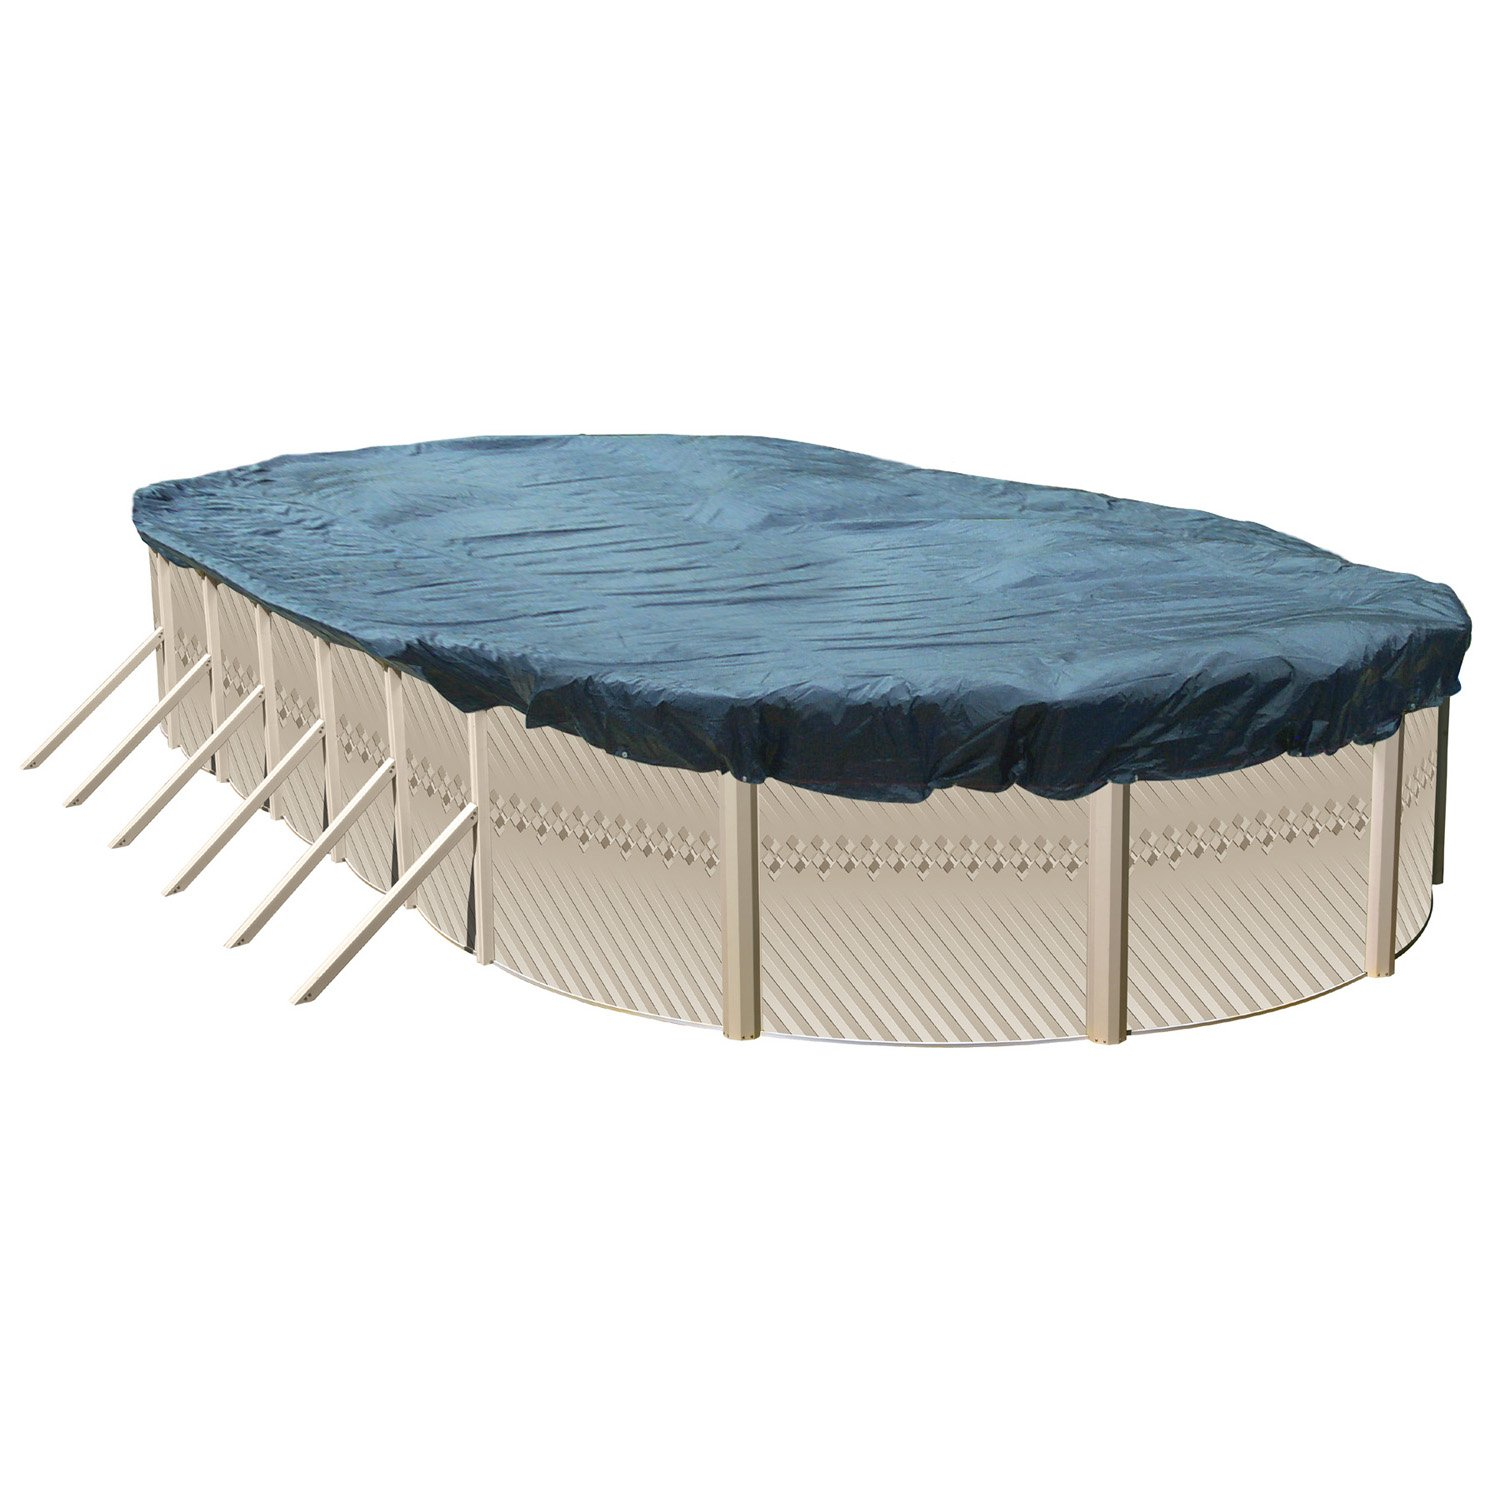 Splash Pools CV 2415 Deluxe Winter Cover for Oval Pools, 24' x 15'